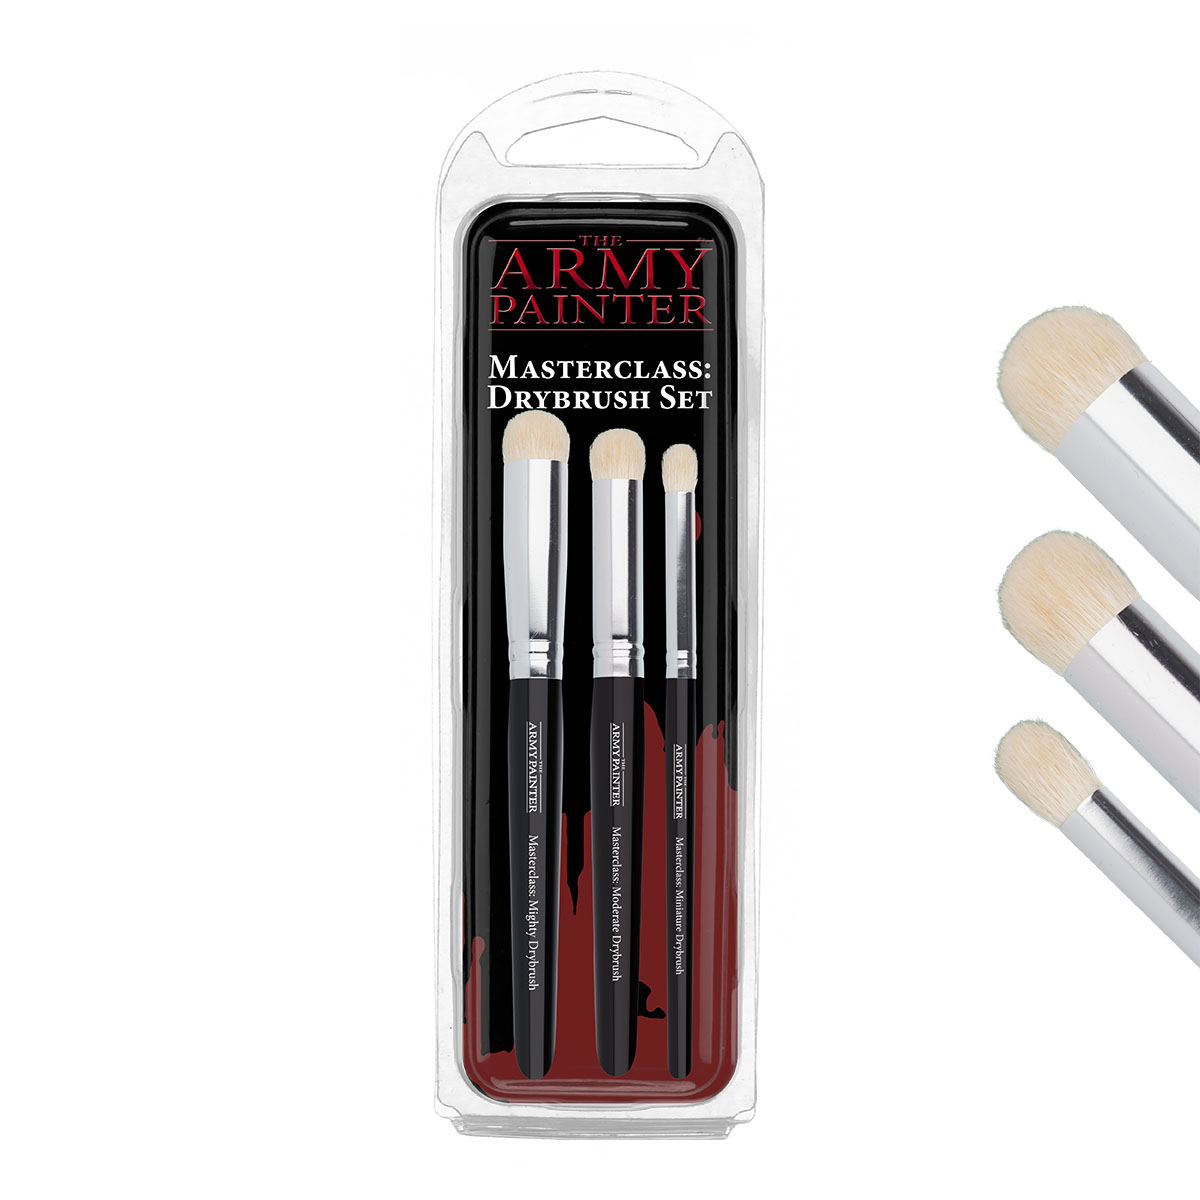 Army Painter Masterclass Dry brush Set, 3 pcs